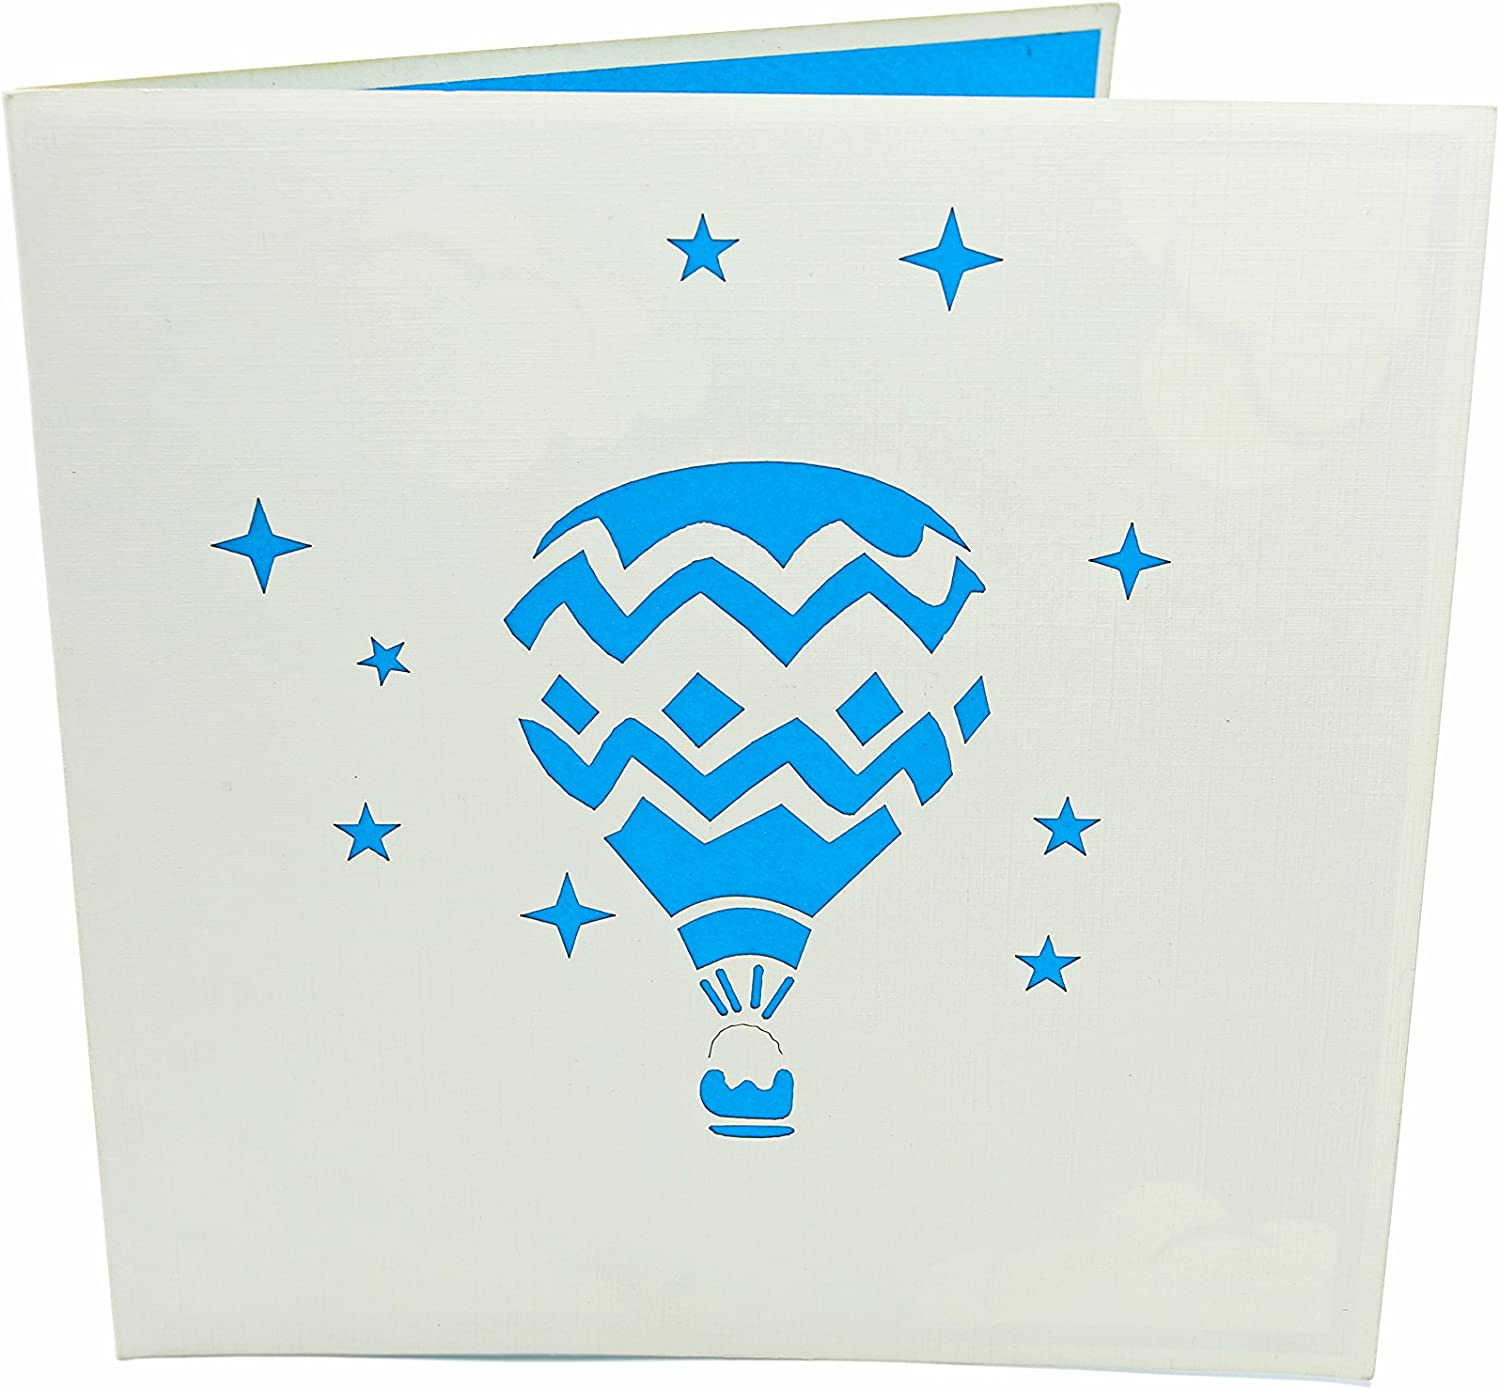 Travelers Baby Shower Adventure Lovers Parents PopLife Hot Air Balloon /& Sky 3D Pop Up Greeting Card for All Occasions Graduation Anniversary Retirement Folds Flat for Mailing Birthday